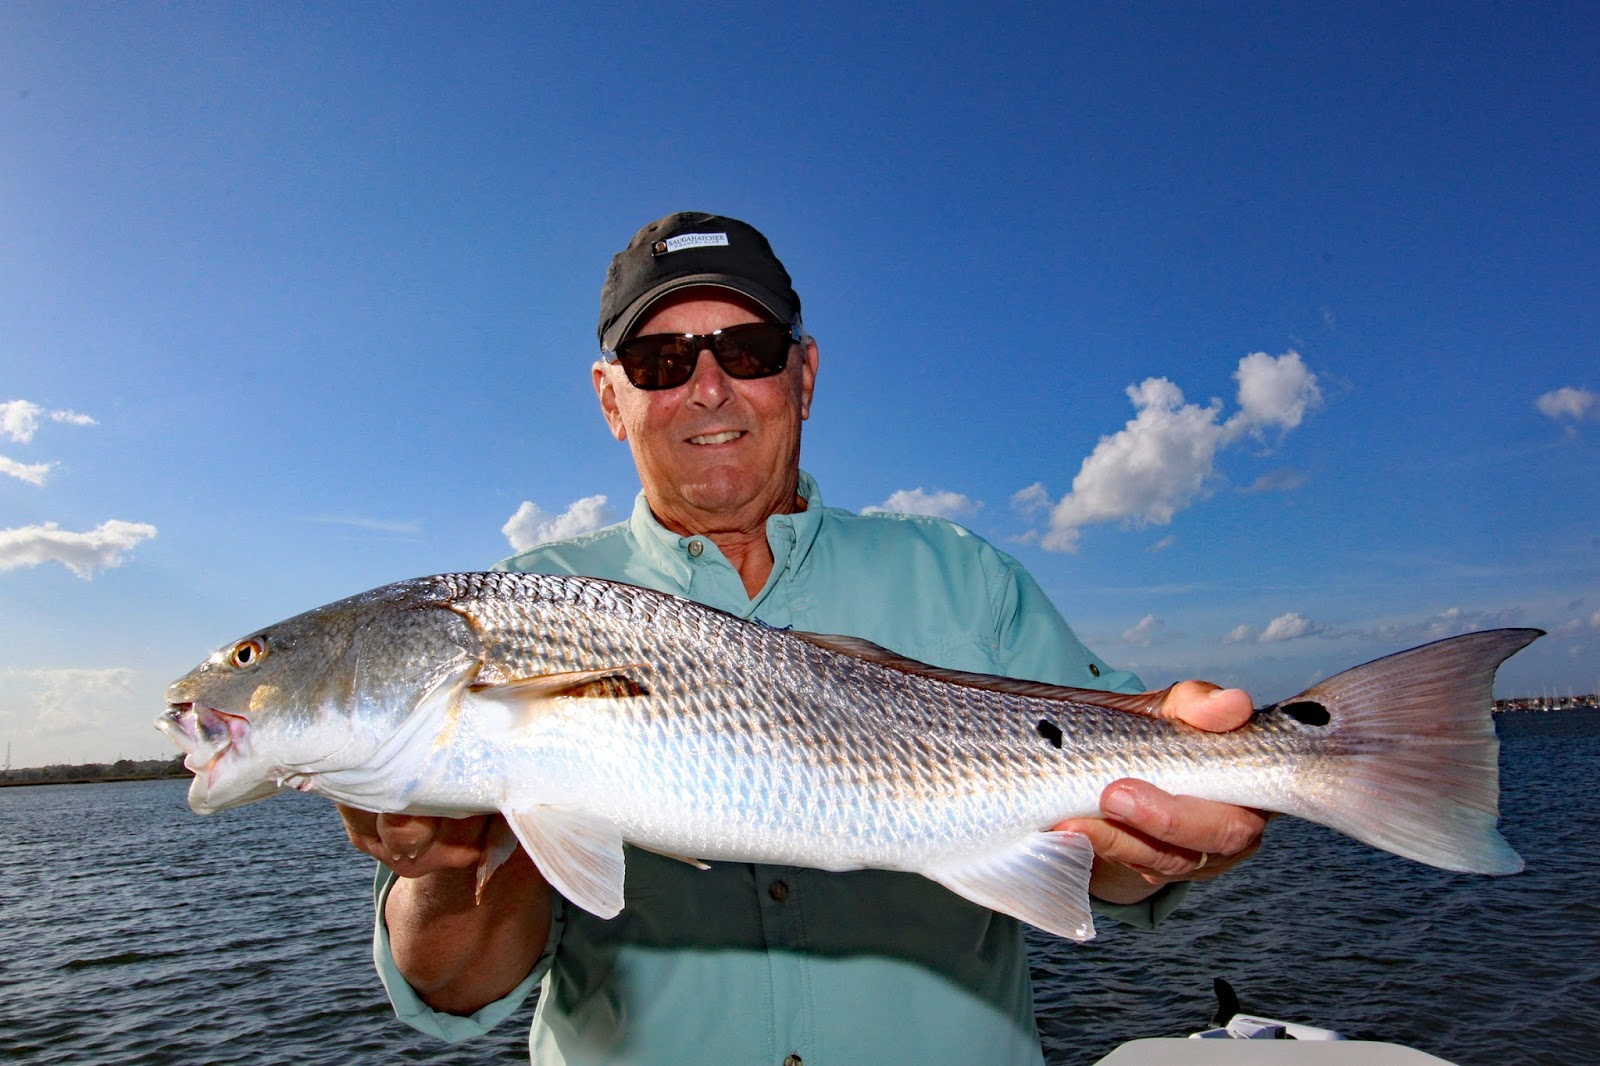 St augustine palm coast fishing report november 29th for St augustine fishing spots